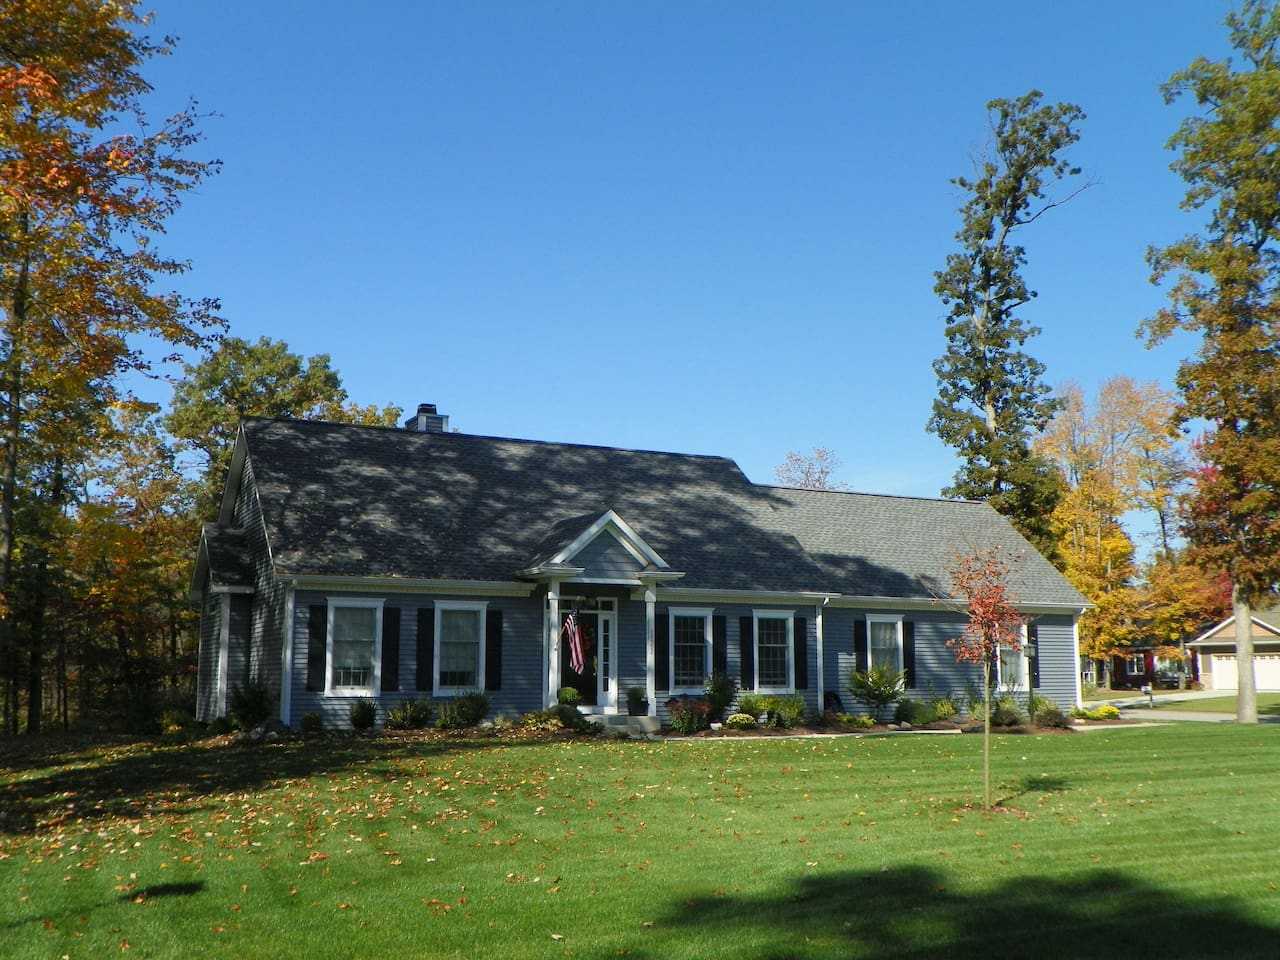 New England colonial cape style ranch with full daylight basement.